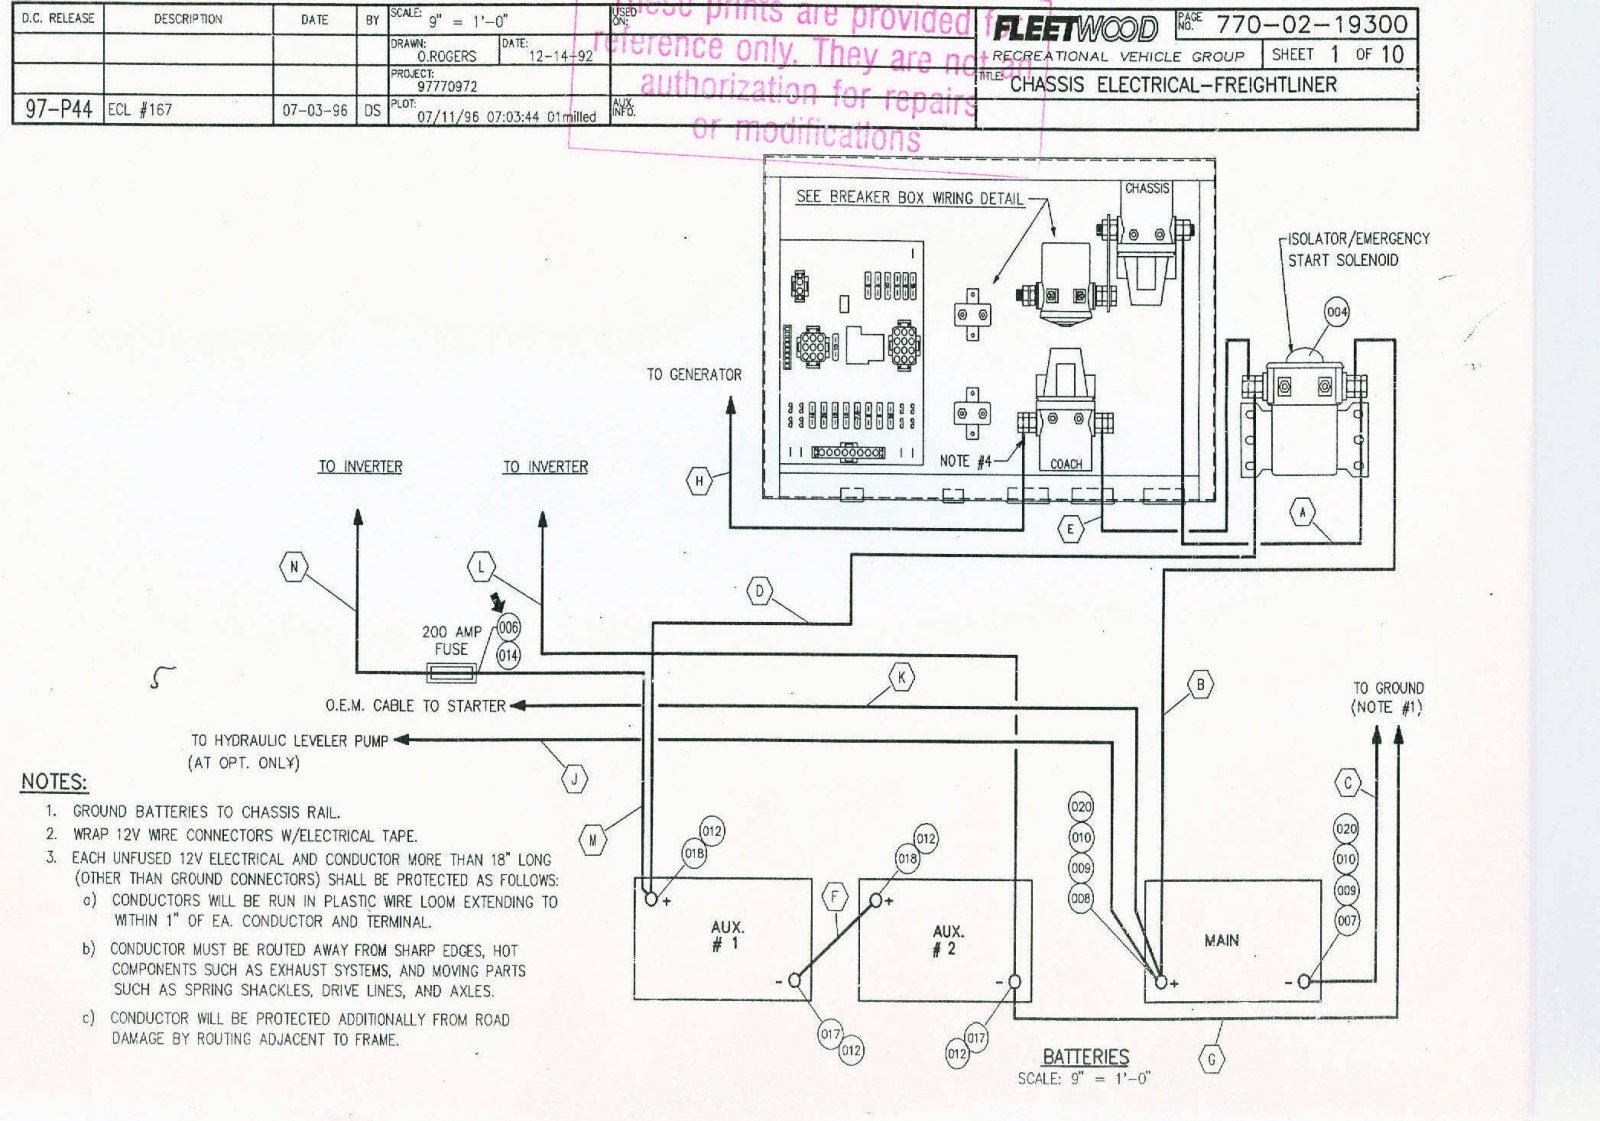 1992 fleetwood prowler wiring diagram picture